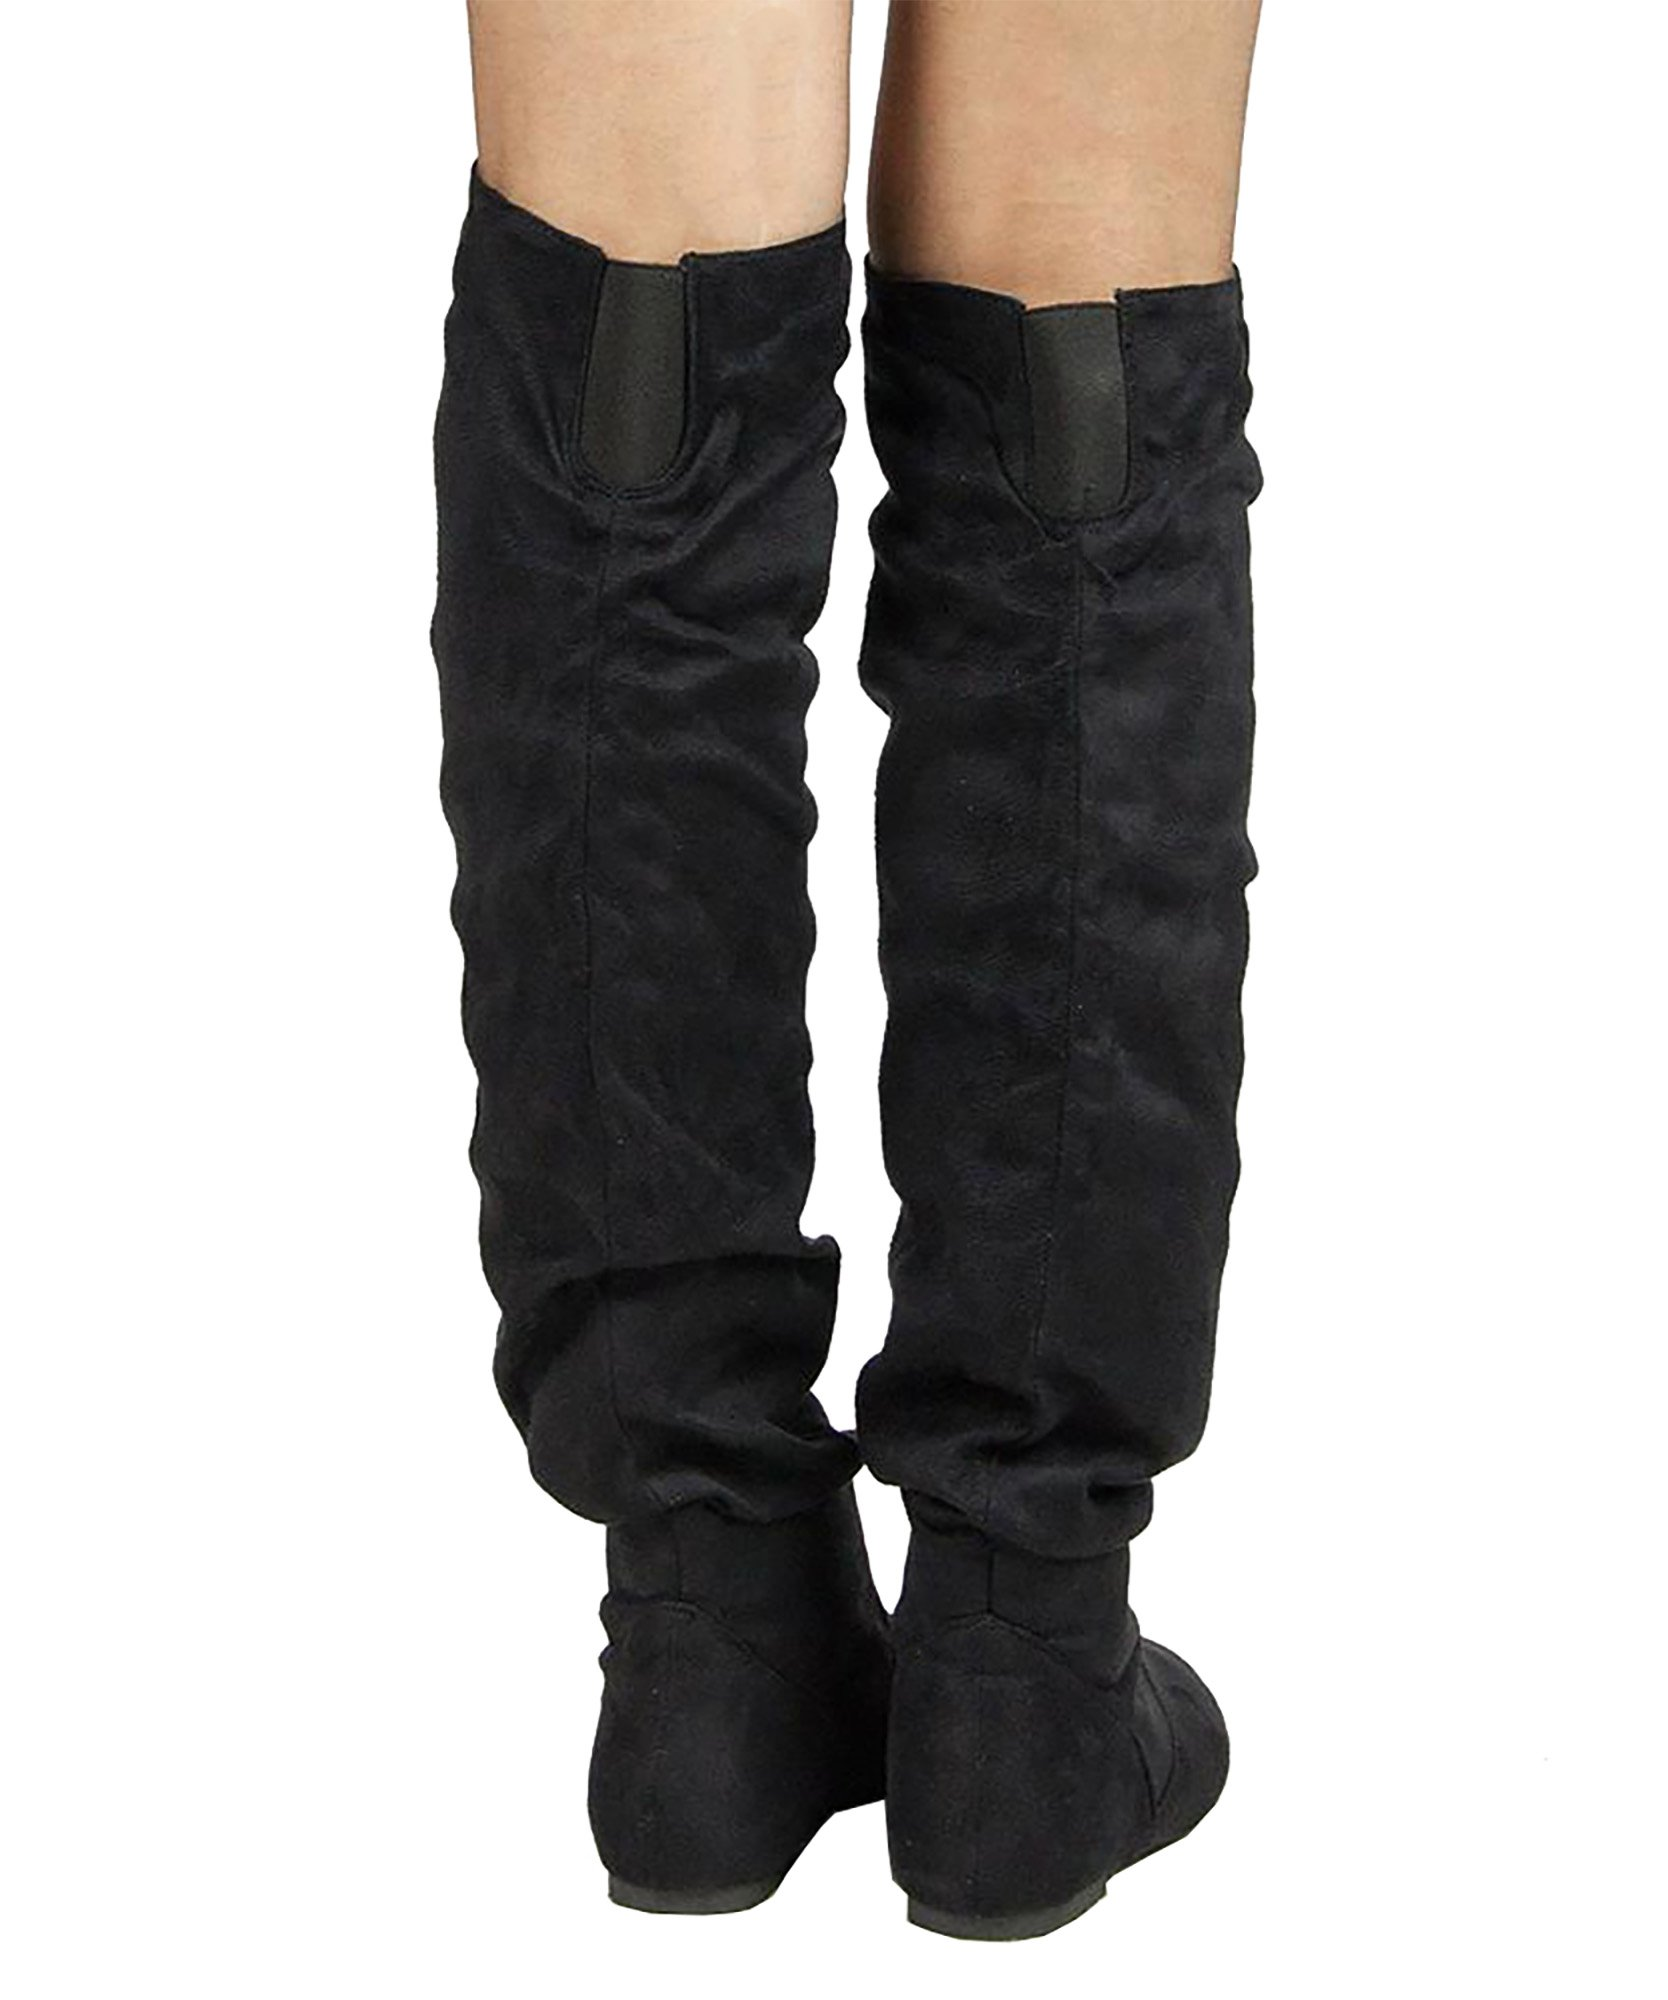 RF ROOM OF FASHION TrendHI-02 Over-The-Knee Boots (Black SU Size 7.5) by RF ROOM OF FASHION (Image #4)